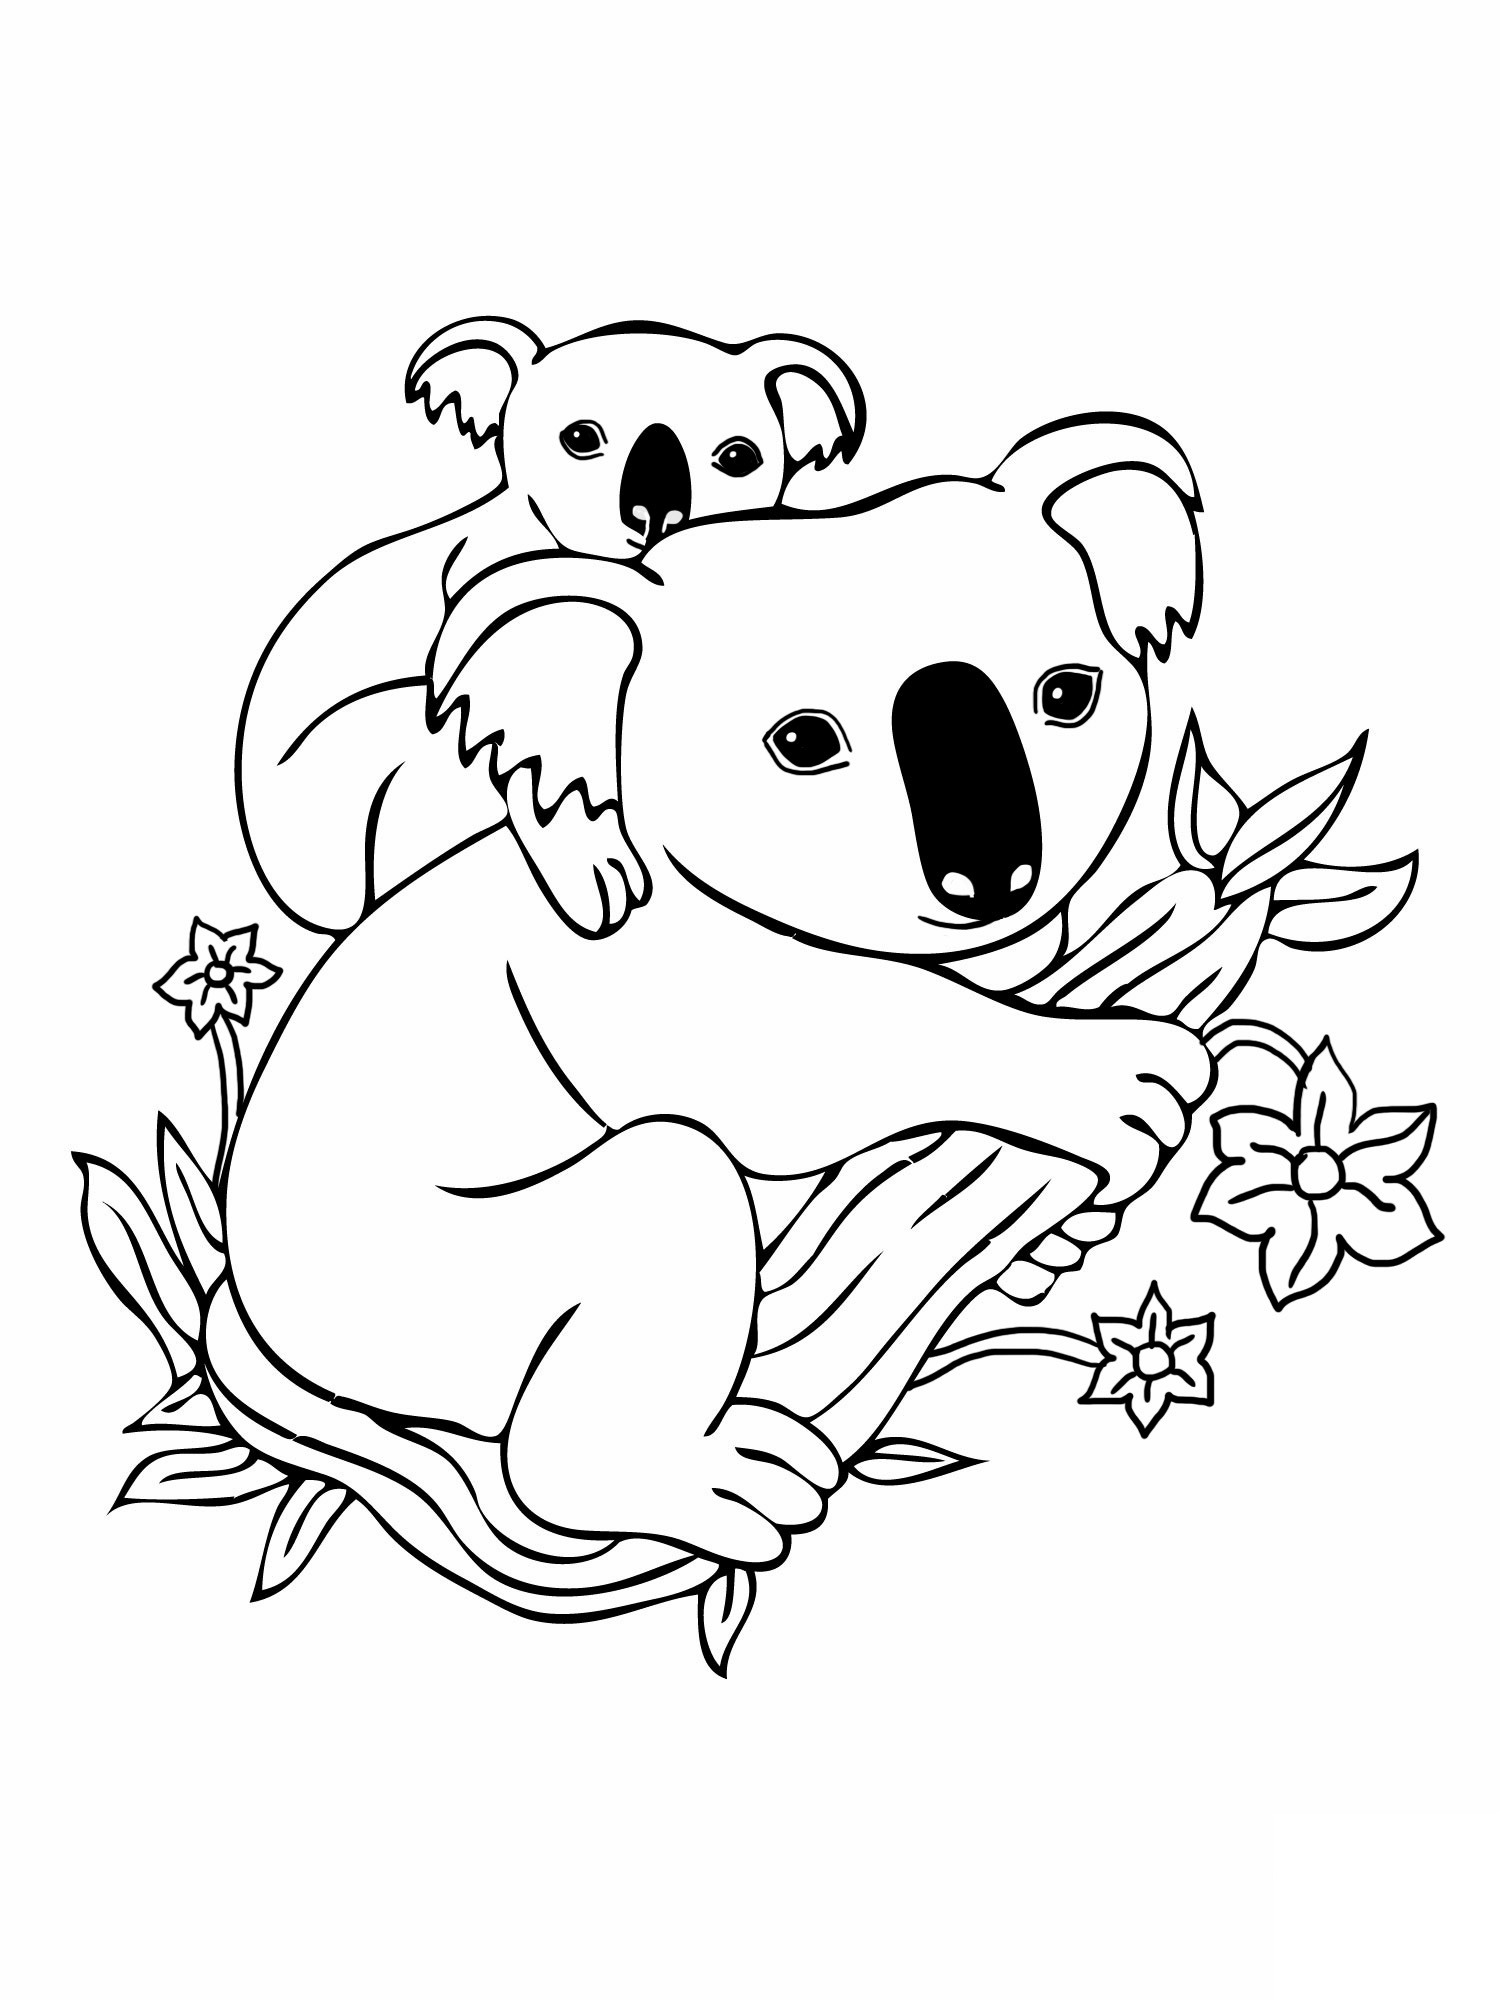 It is an image of Juicy Koala Bears Coloring Pages